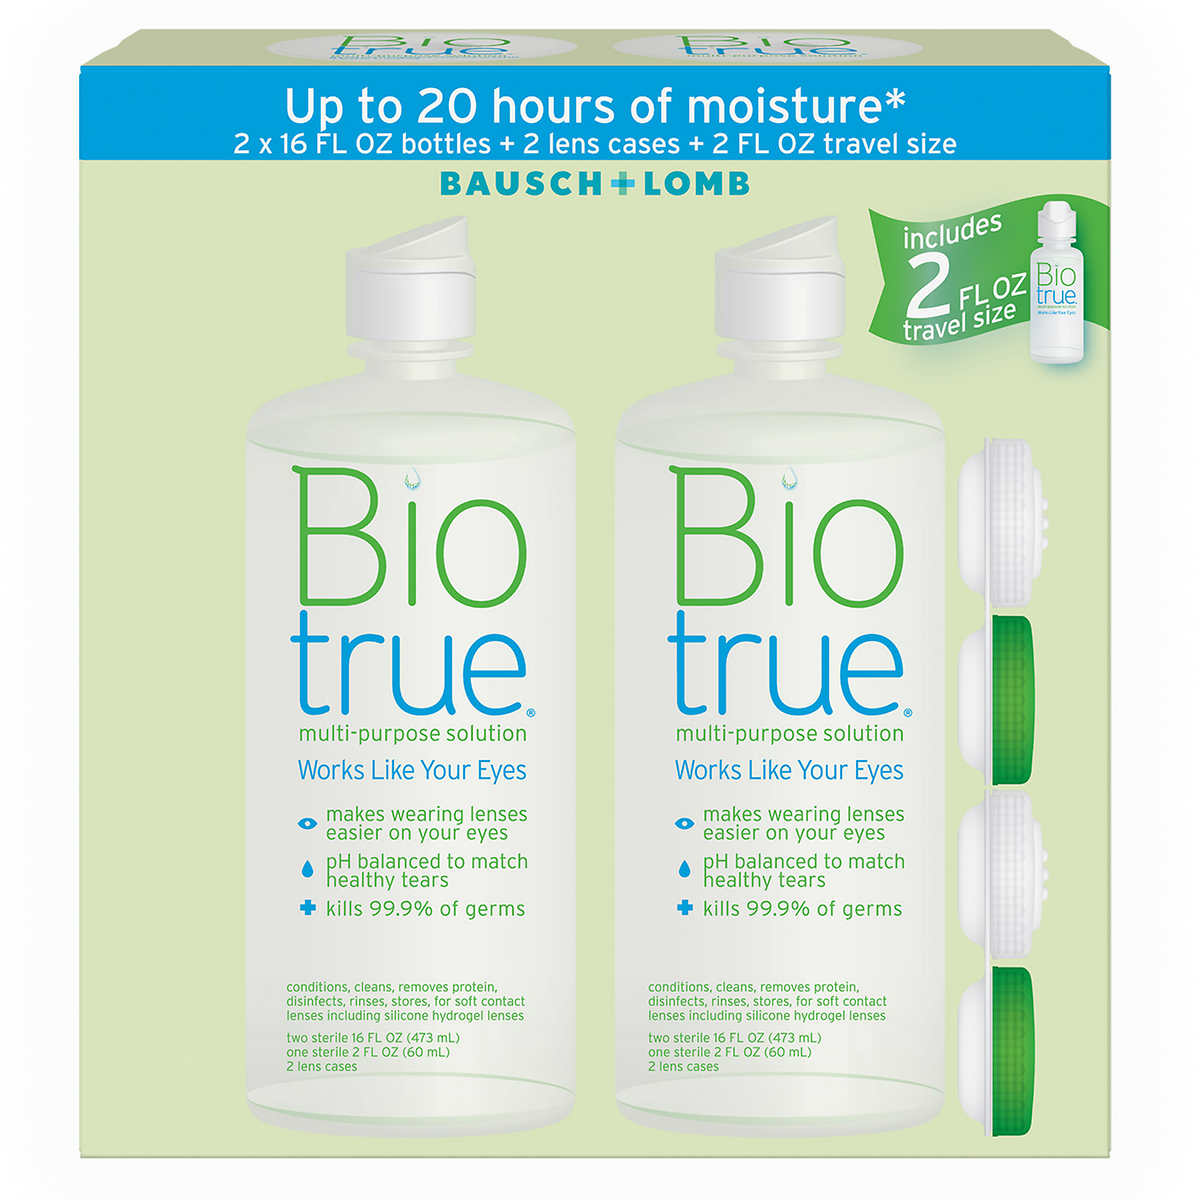 Bausch & Lomb Biotrue Multi-Purpose Solution